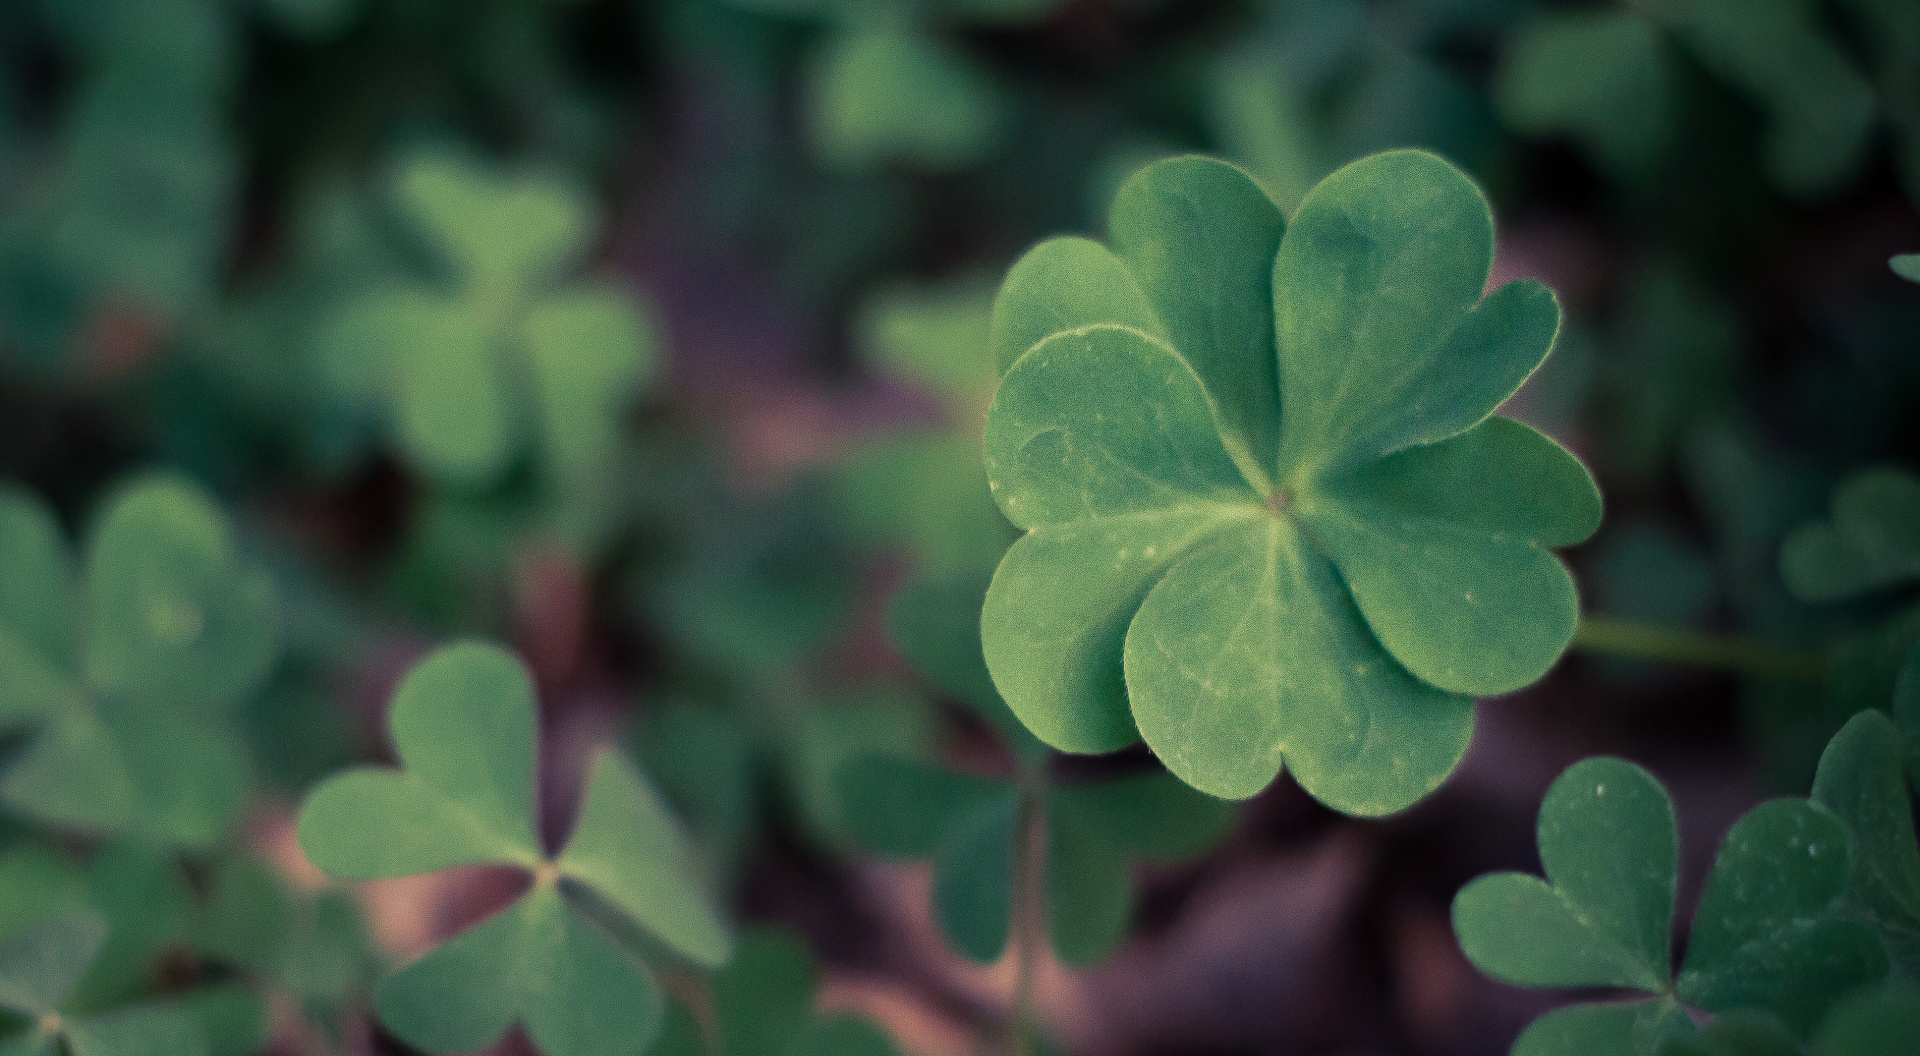 Full Hd 3d Wallpapers 1080p For Mobile Clover Desktop Background Pixelstalk Net